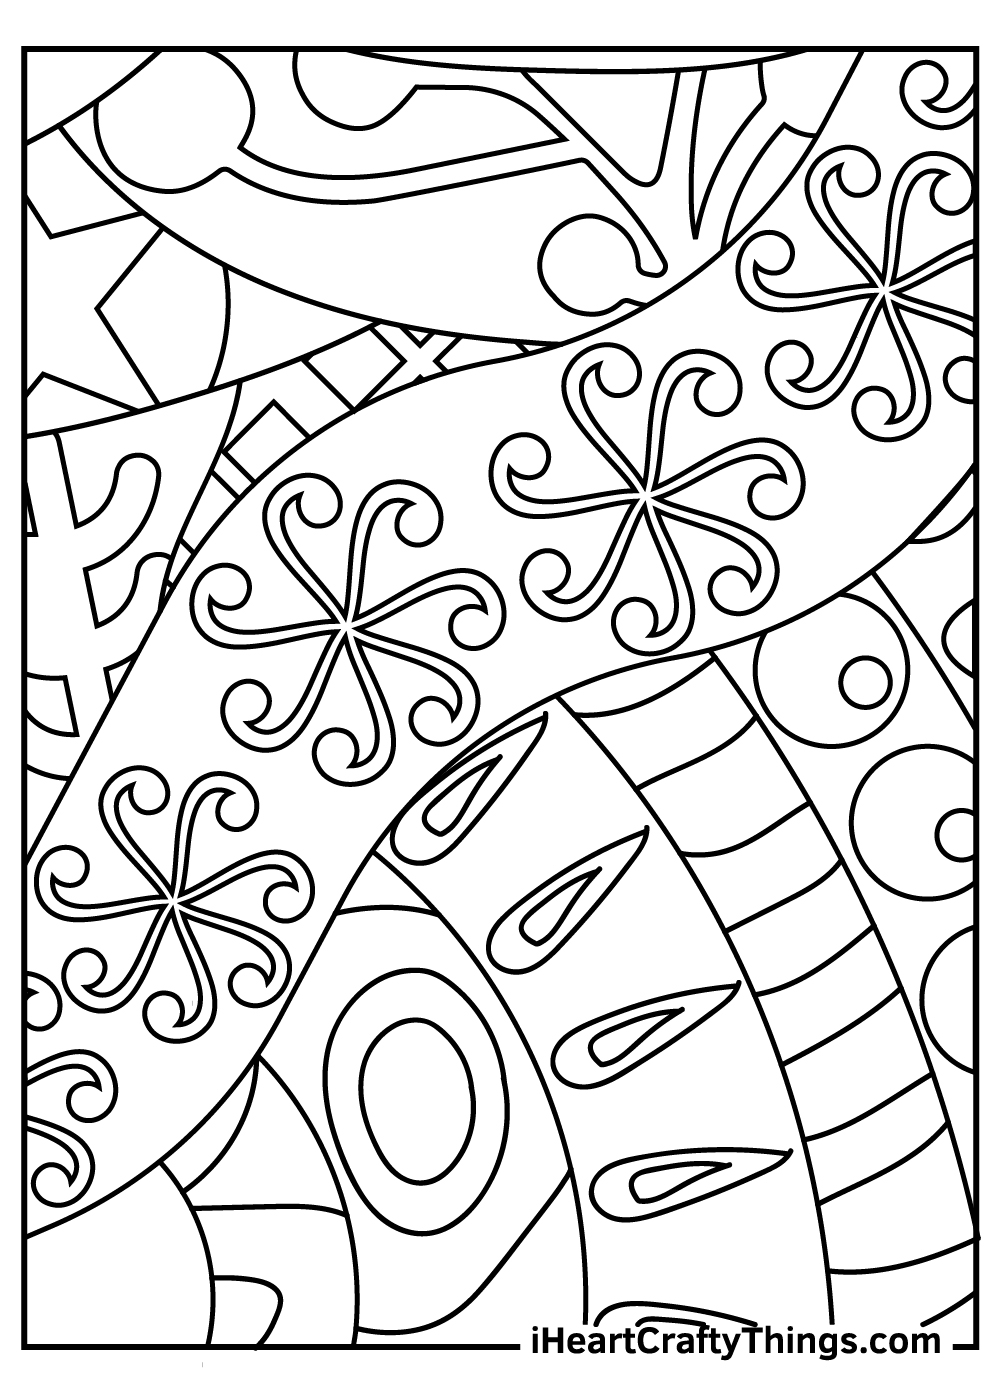 abstract coloring sheets for kids download pdf